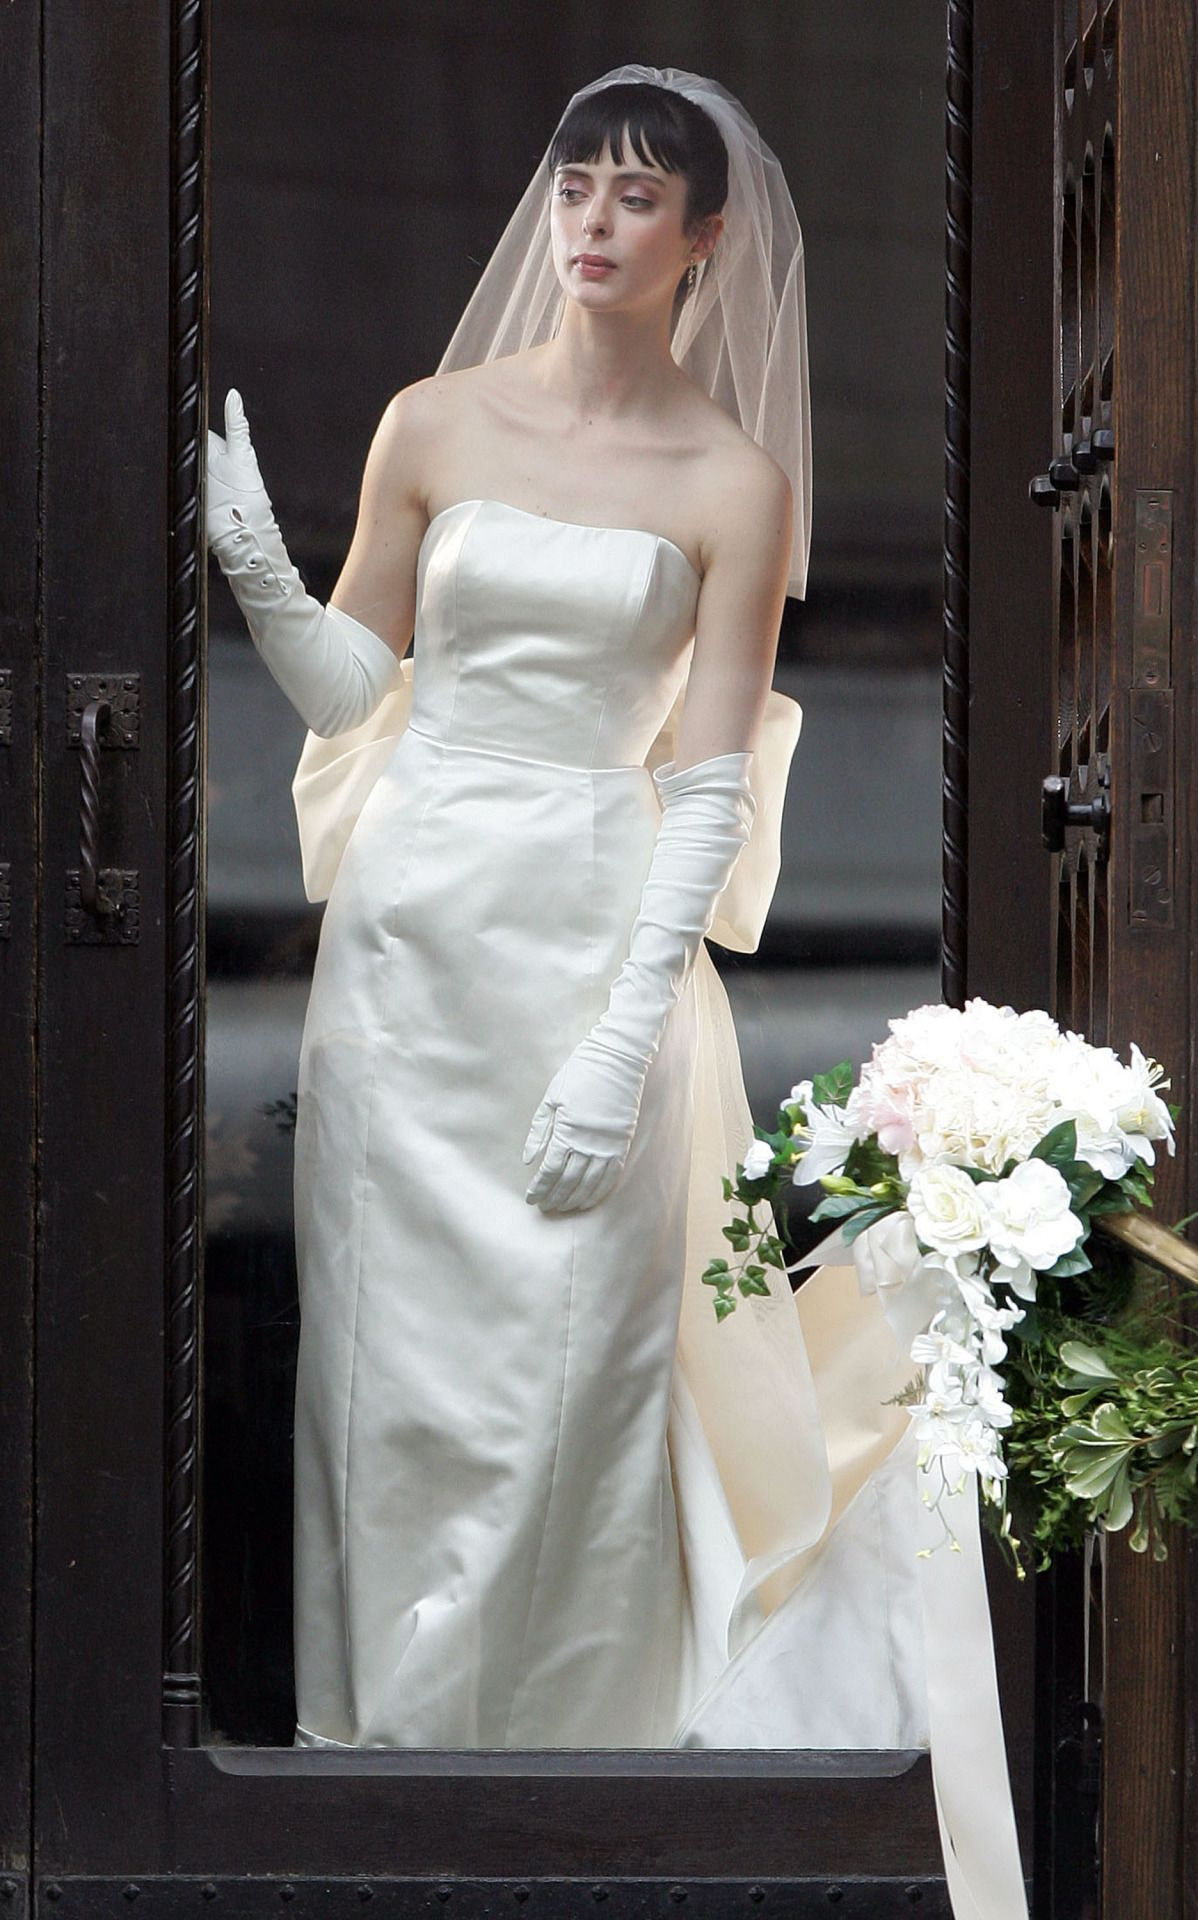 The most important day should definitely be a white glove